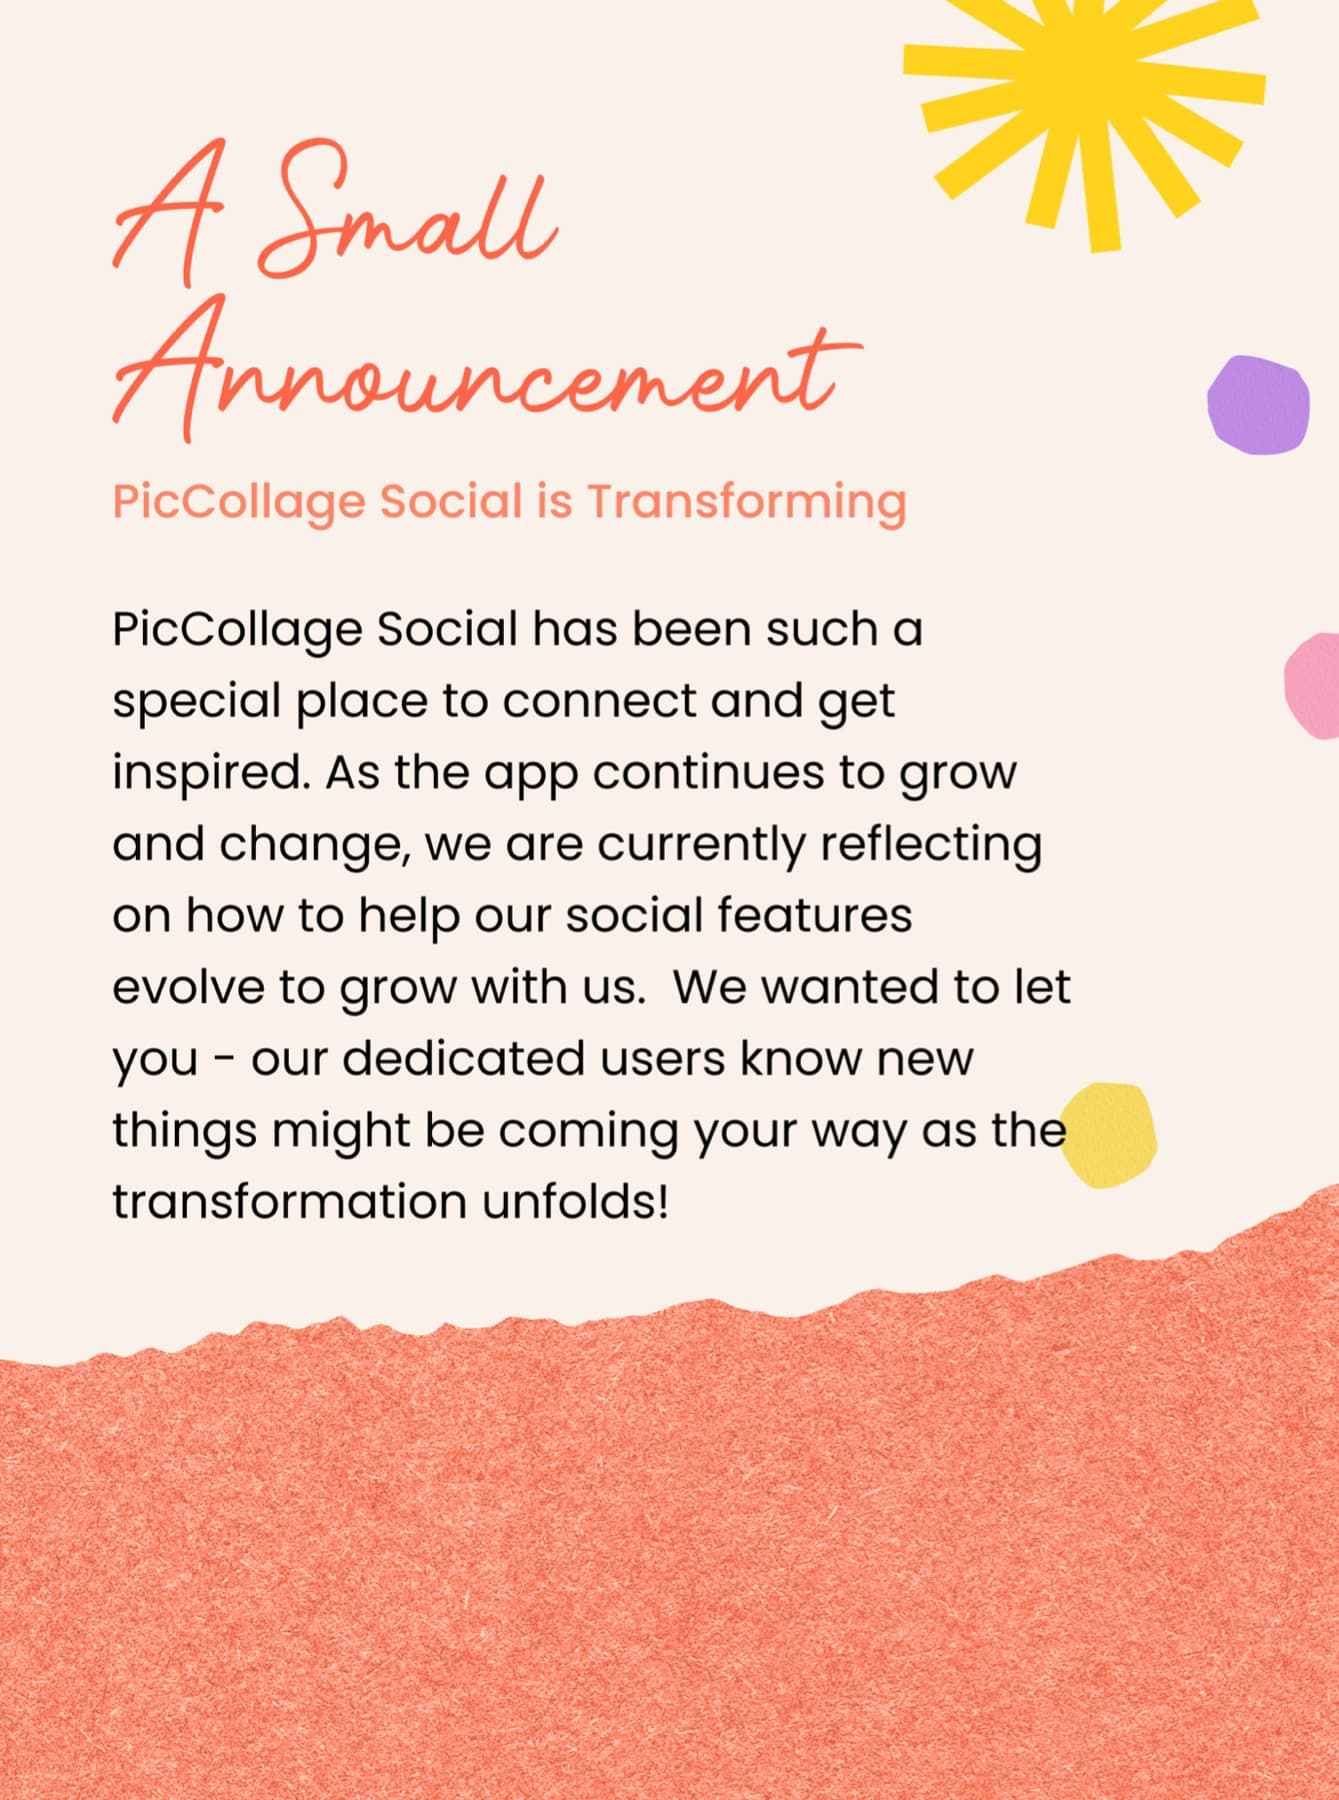 PicCollage Social is transforming!